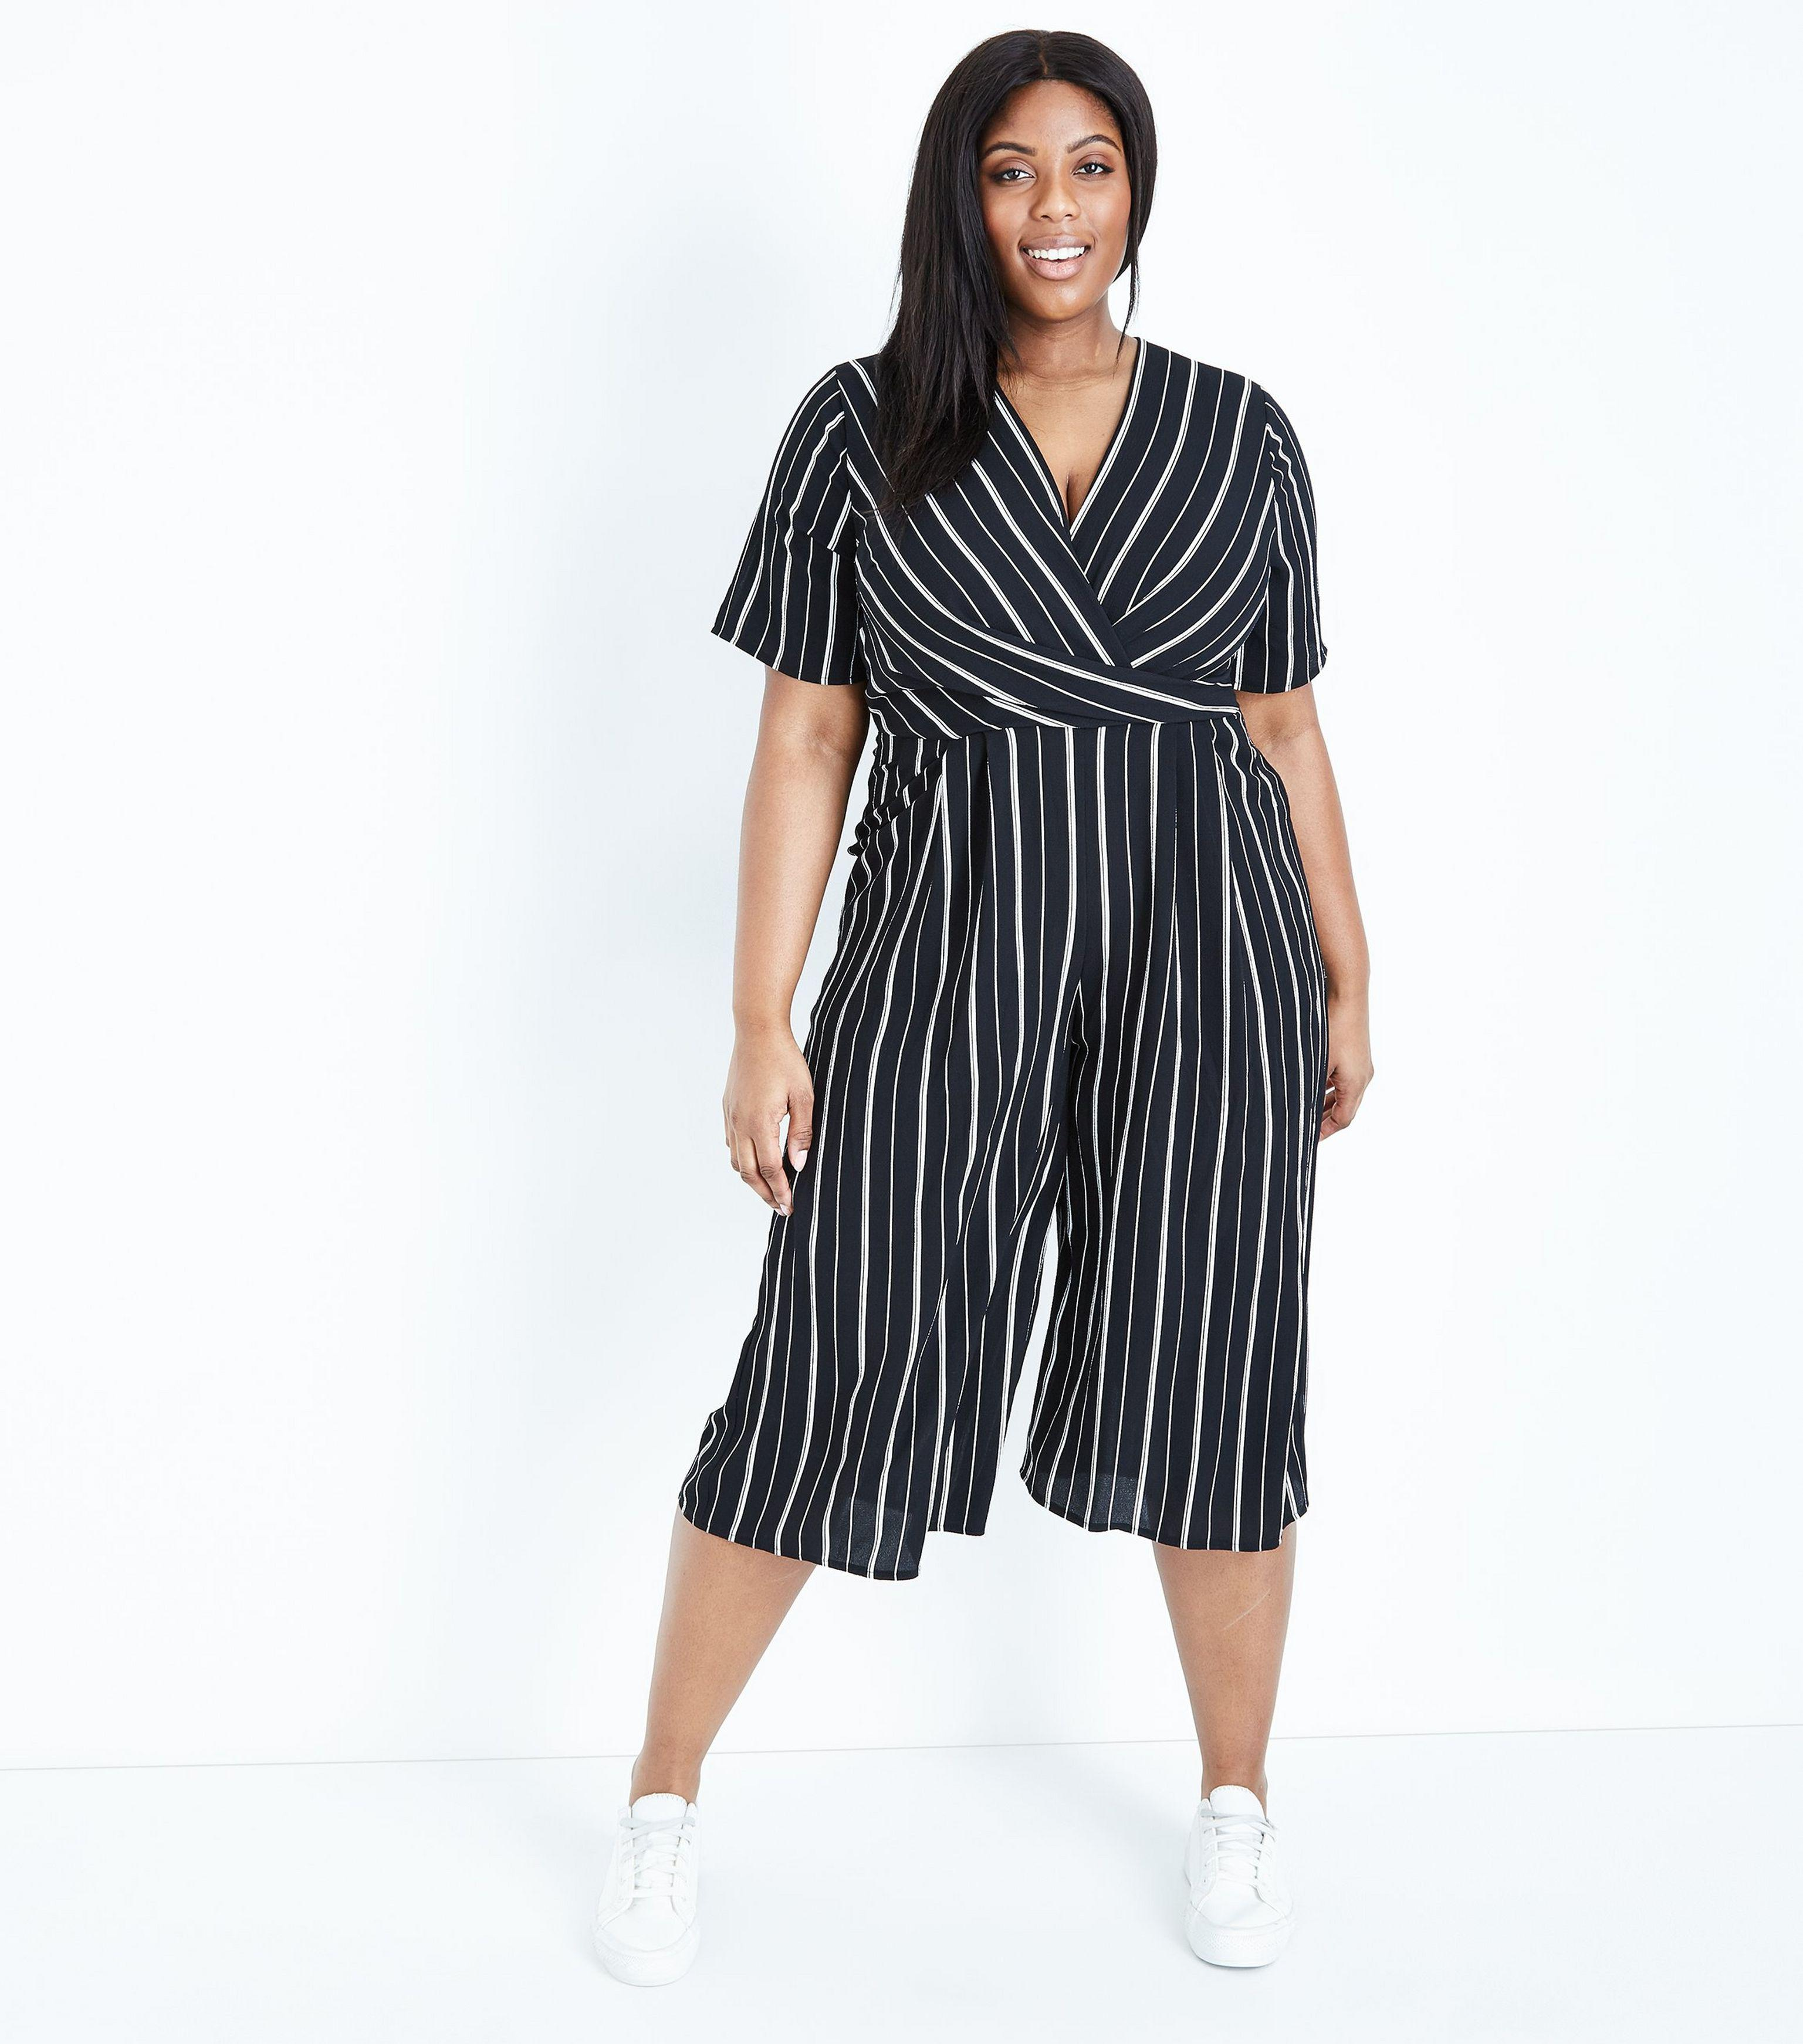 34625b0a7a5 New Look Curves Black Stripe Wrap Culotte Jumpsuit in Black - Lyst